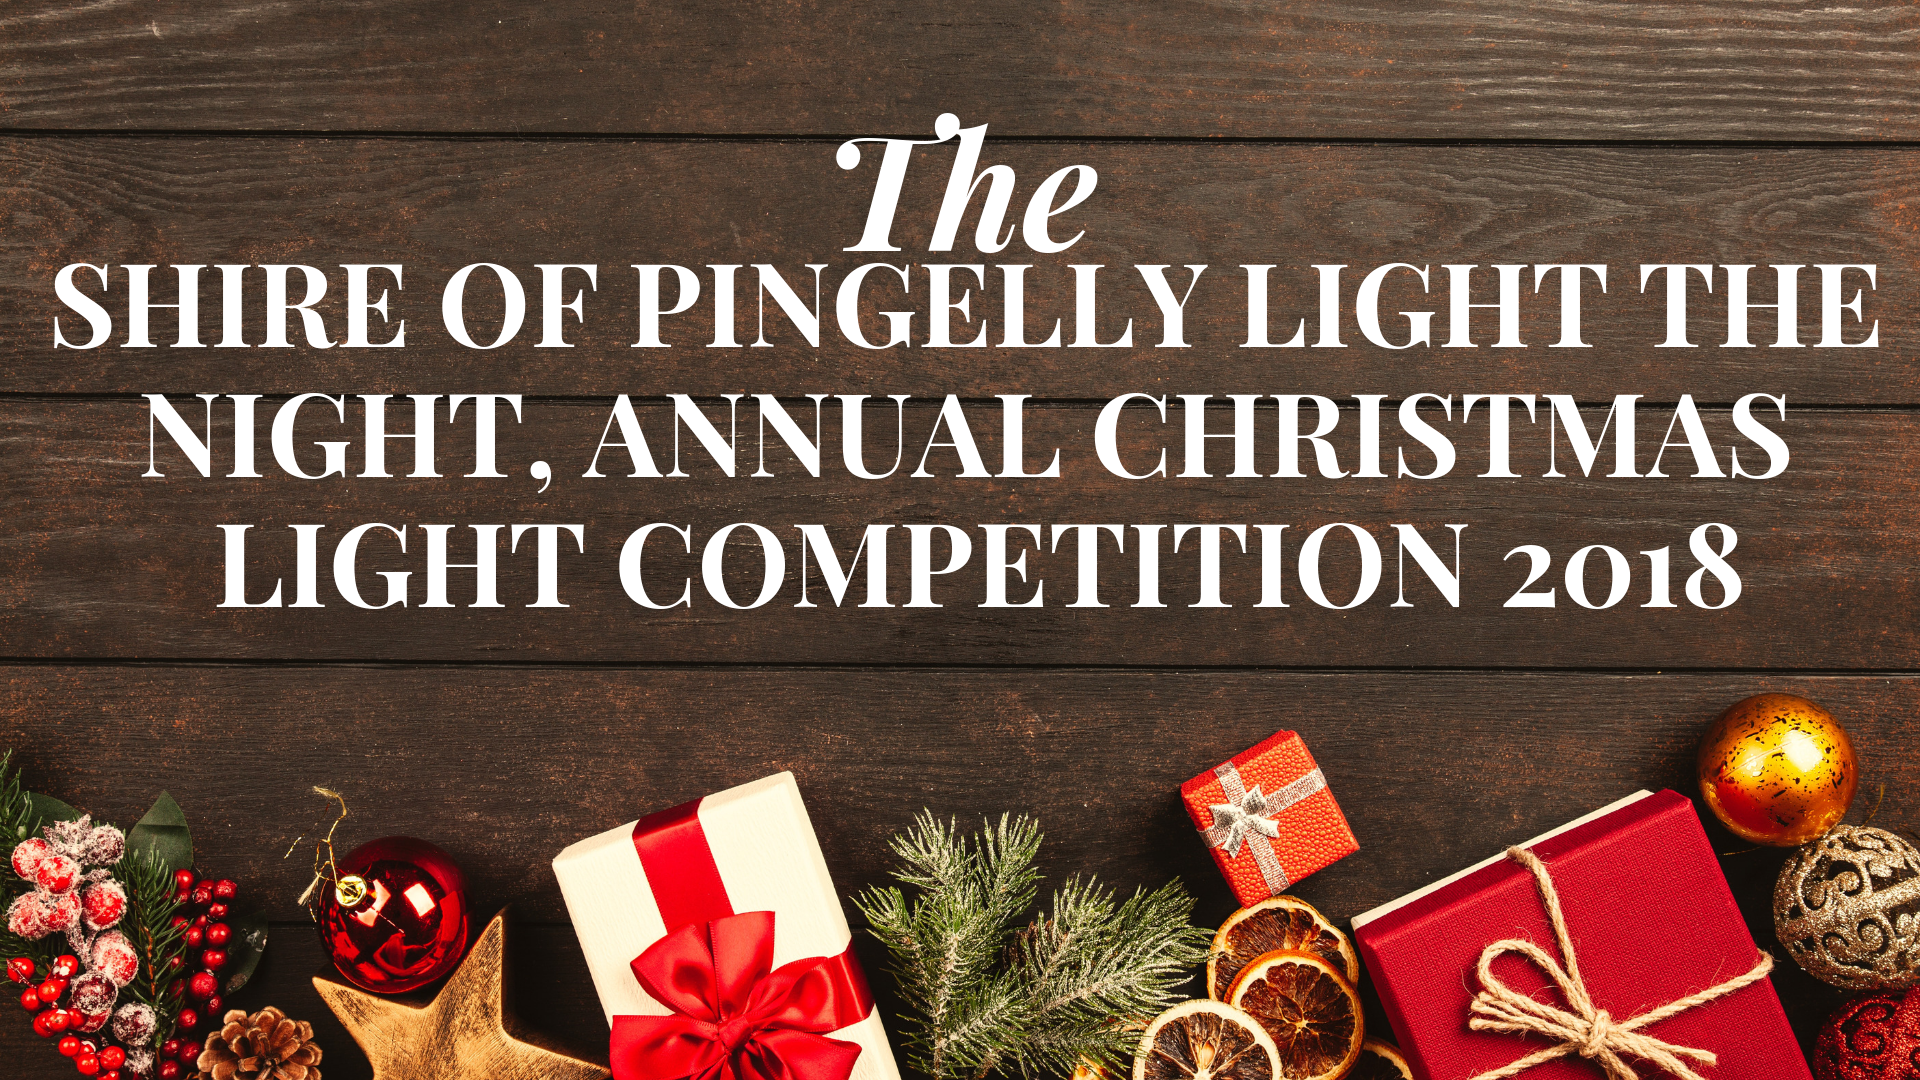 Shire of Pingelly, Light the Night, Annual Christmas Light Competition 2018